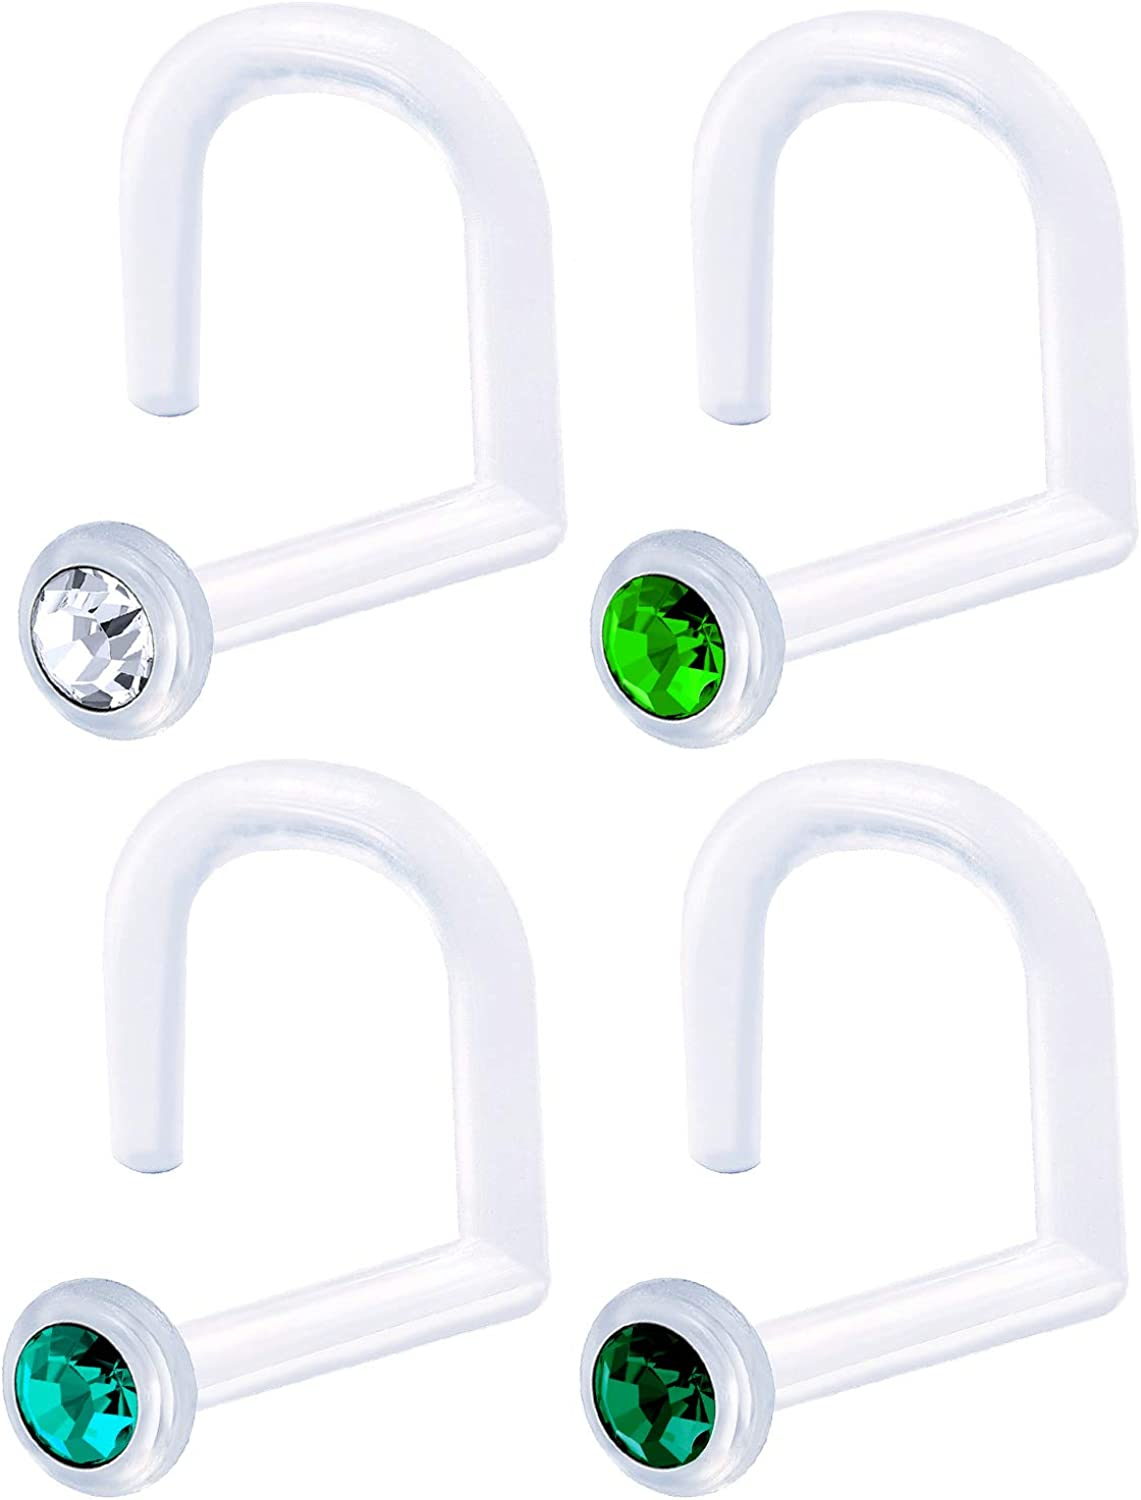 MATIGA 4Pcs Flexible Clear 18 Gauge 9/32 7mm Stud Nose Ring Screw Piercing Jewelry 1.5mm Round Crystal More Choices